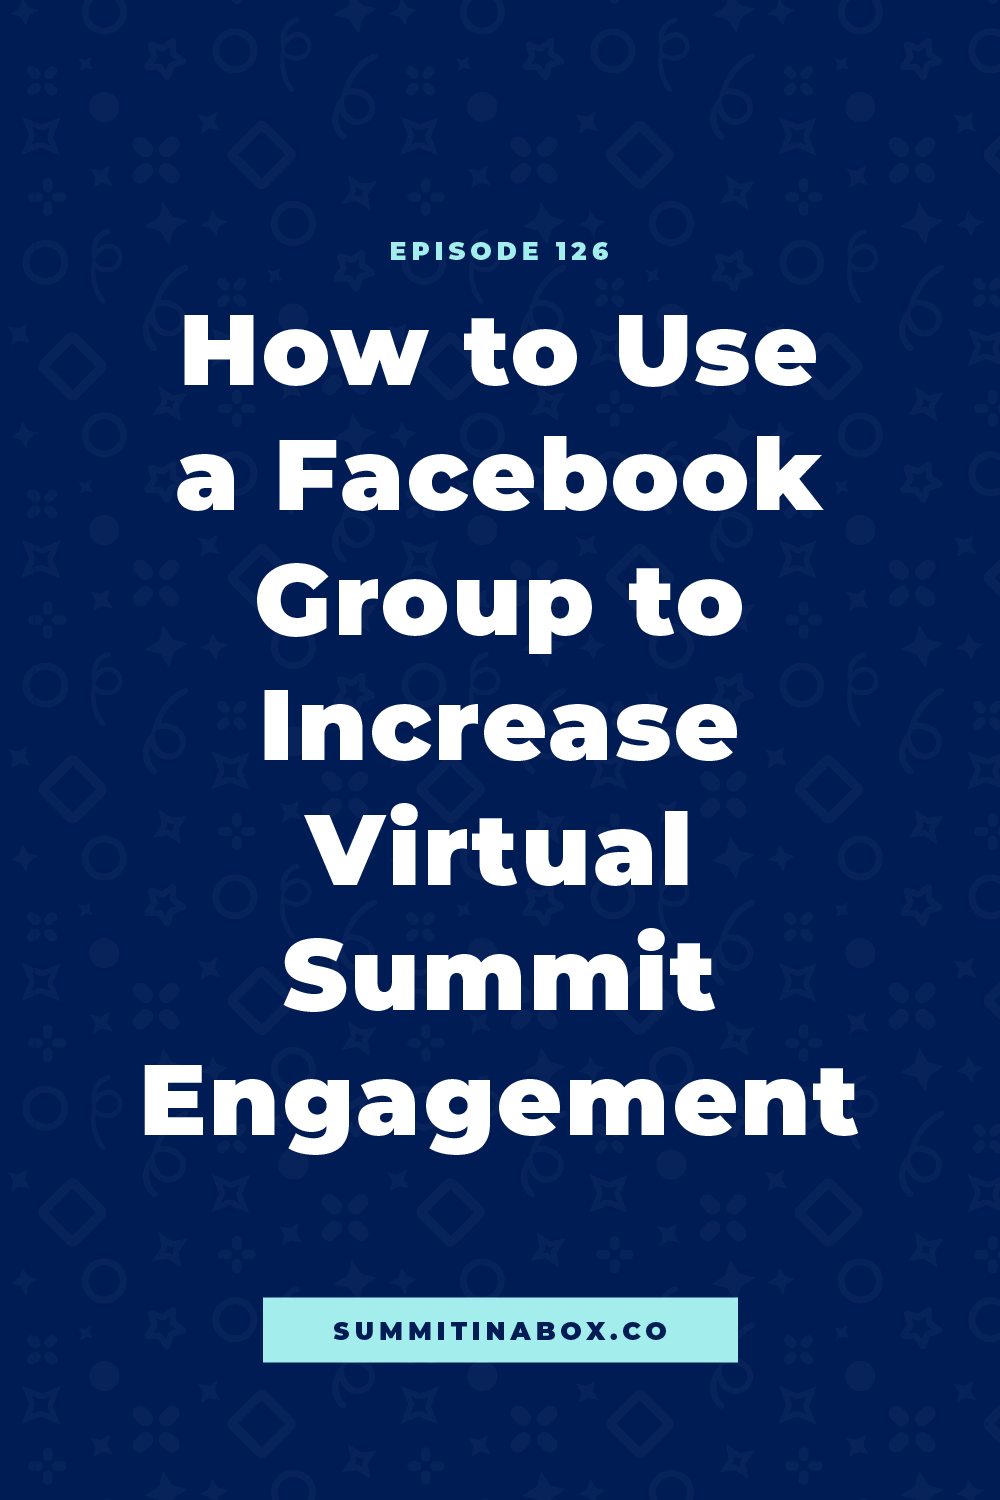 Let's cover why you need a Facebook group for your summit, how to create a thriving community, getting attendees to join, and tips for managing it all.